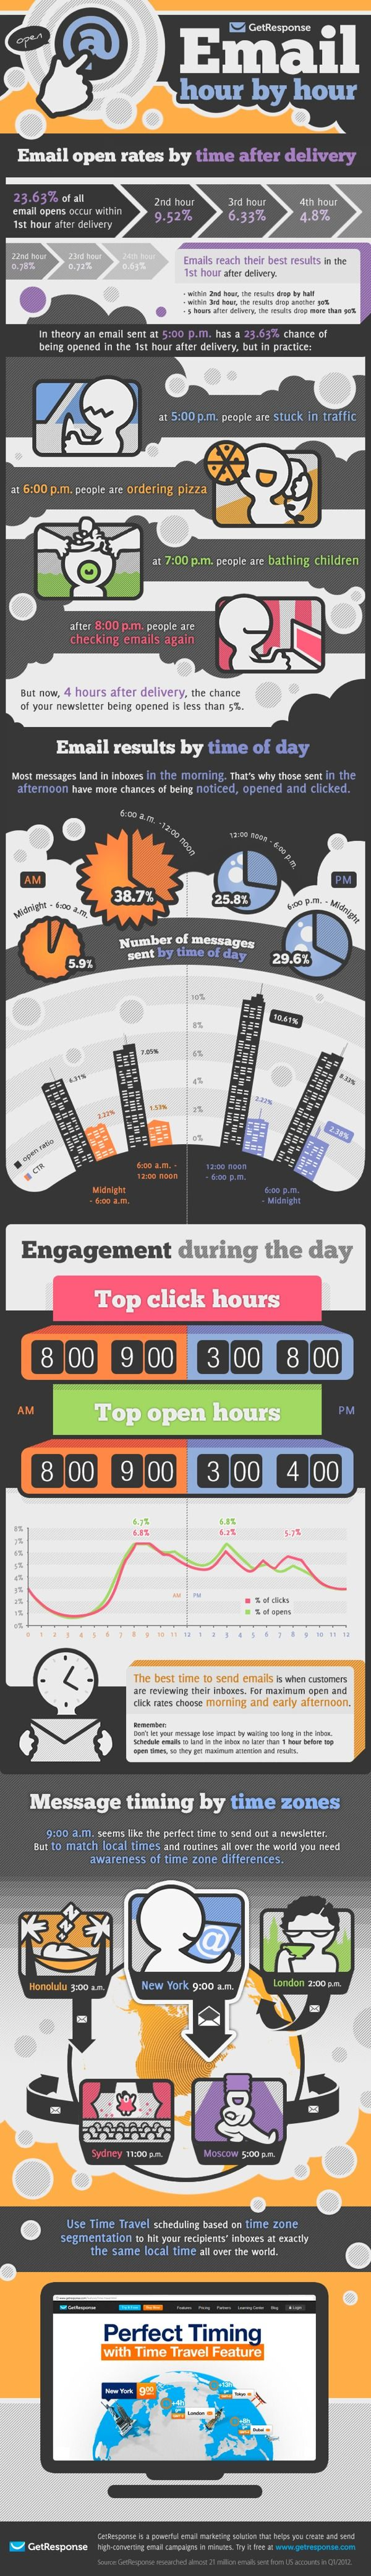 Email Marketing - Best Times to Send Email for Opens and Click-Throughs [Infographic] : MarketingProfs Article